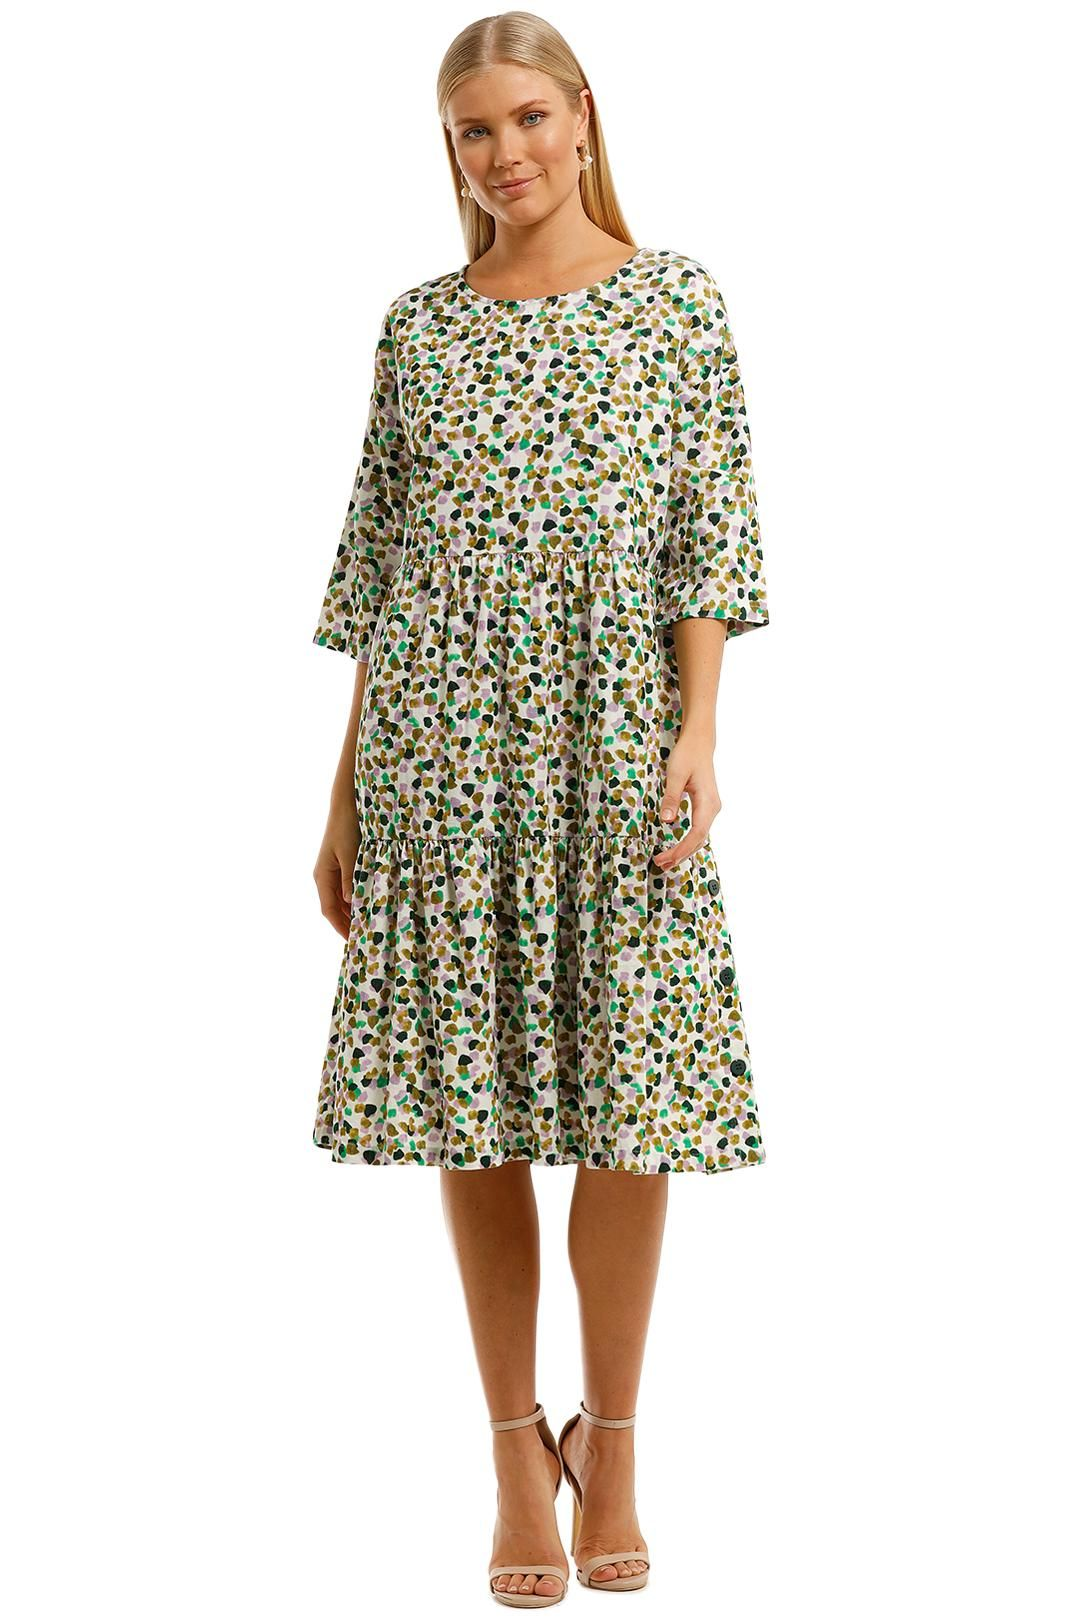 Gorman Confetti Smock Dress Three Quarter Sleeve